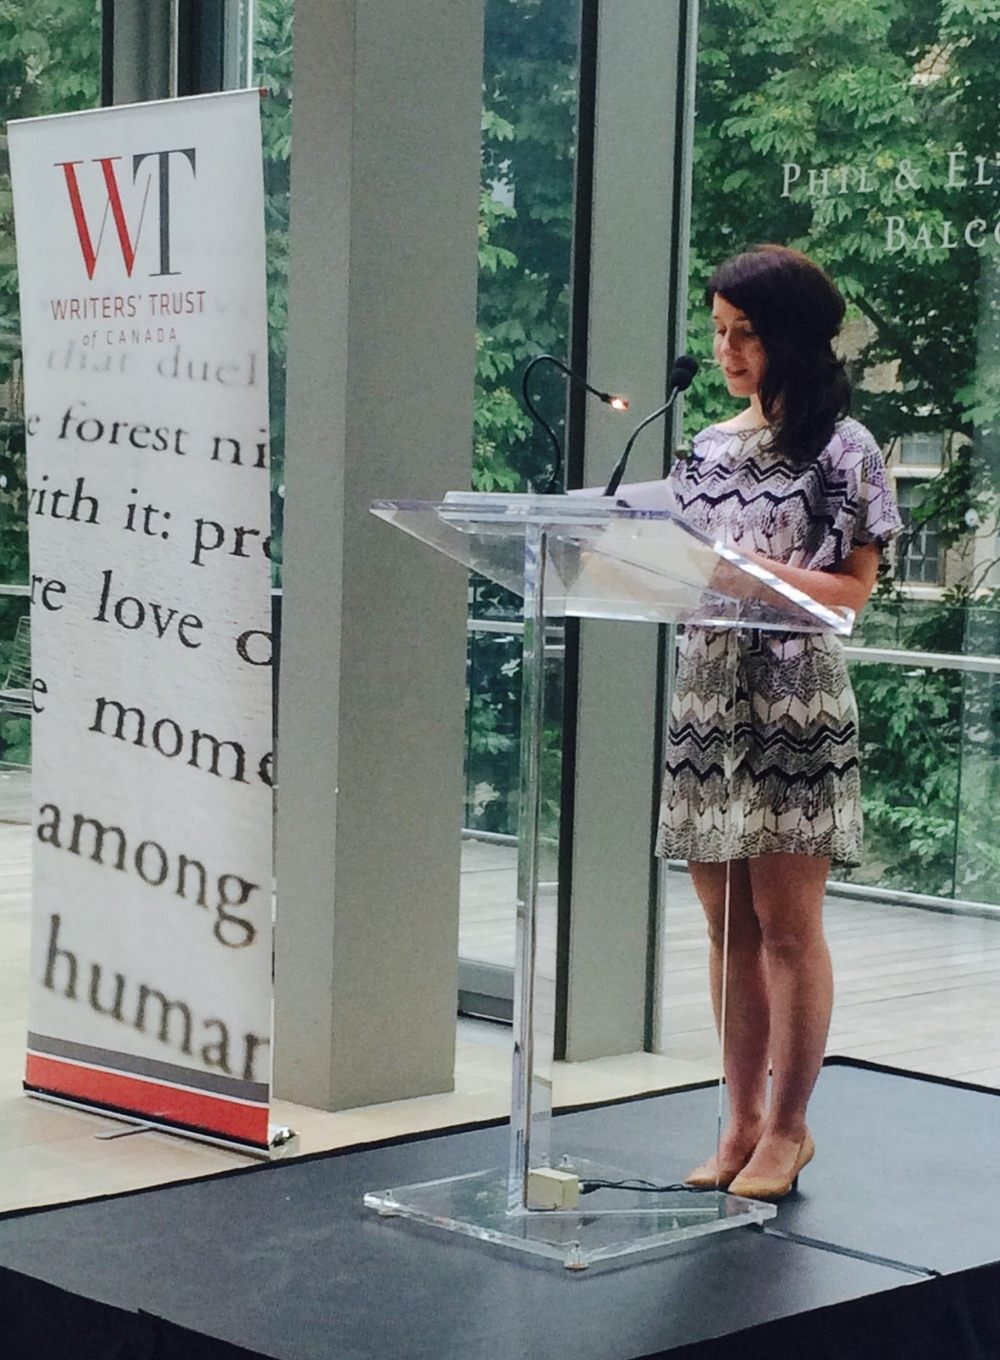 Allegra reading from her story. Photo courtesy of the Writer's Trust of Canada:https://twitter.com/writerstrust/status/740675533793558528